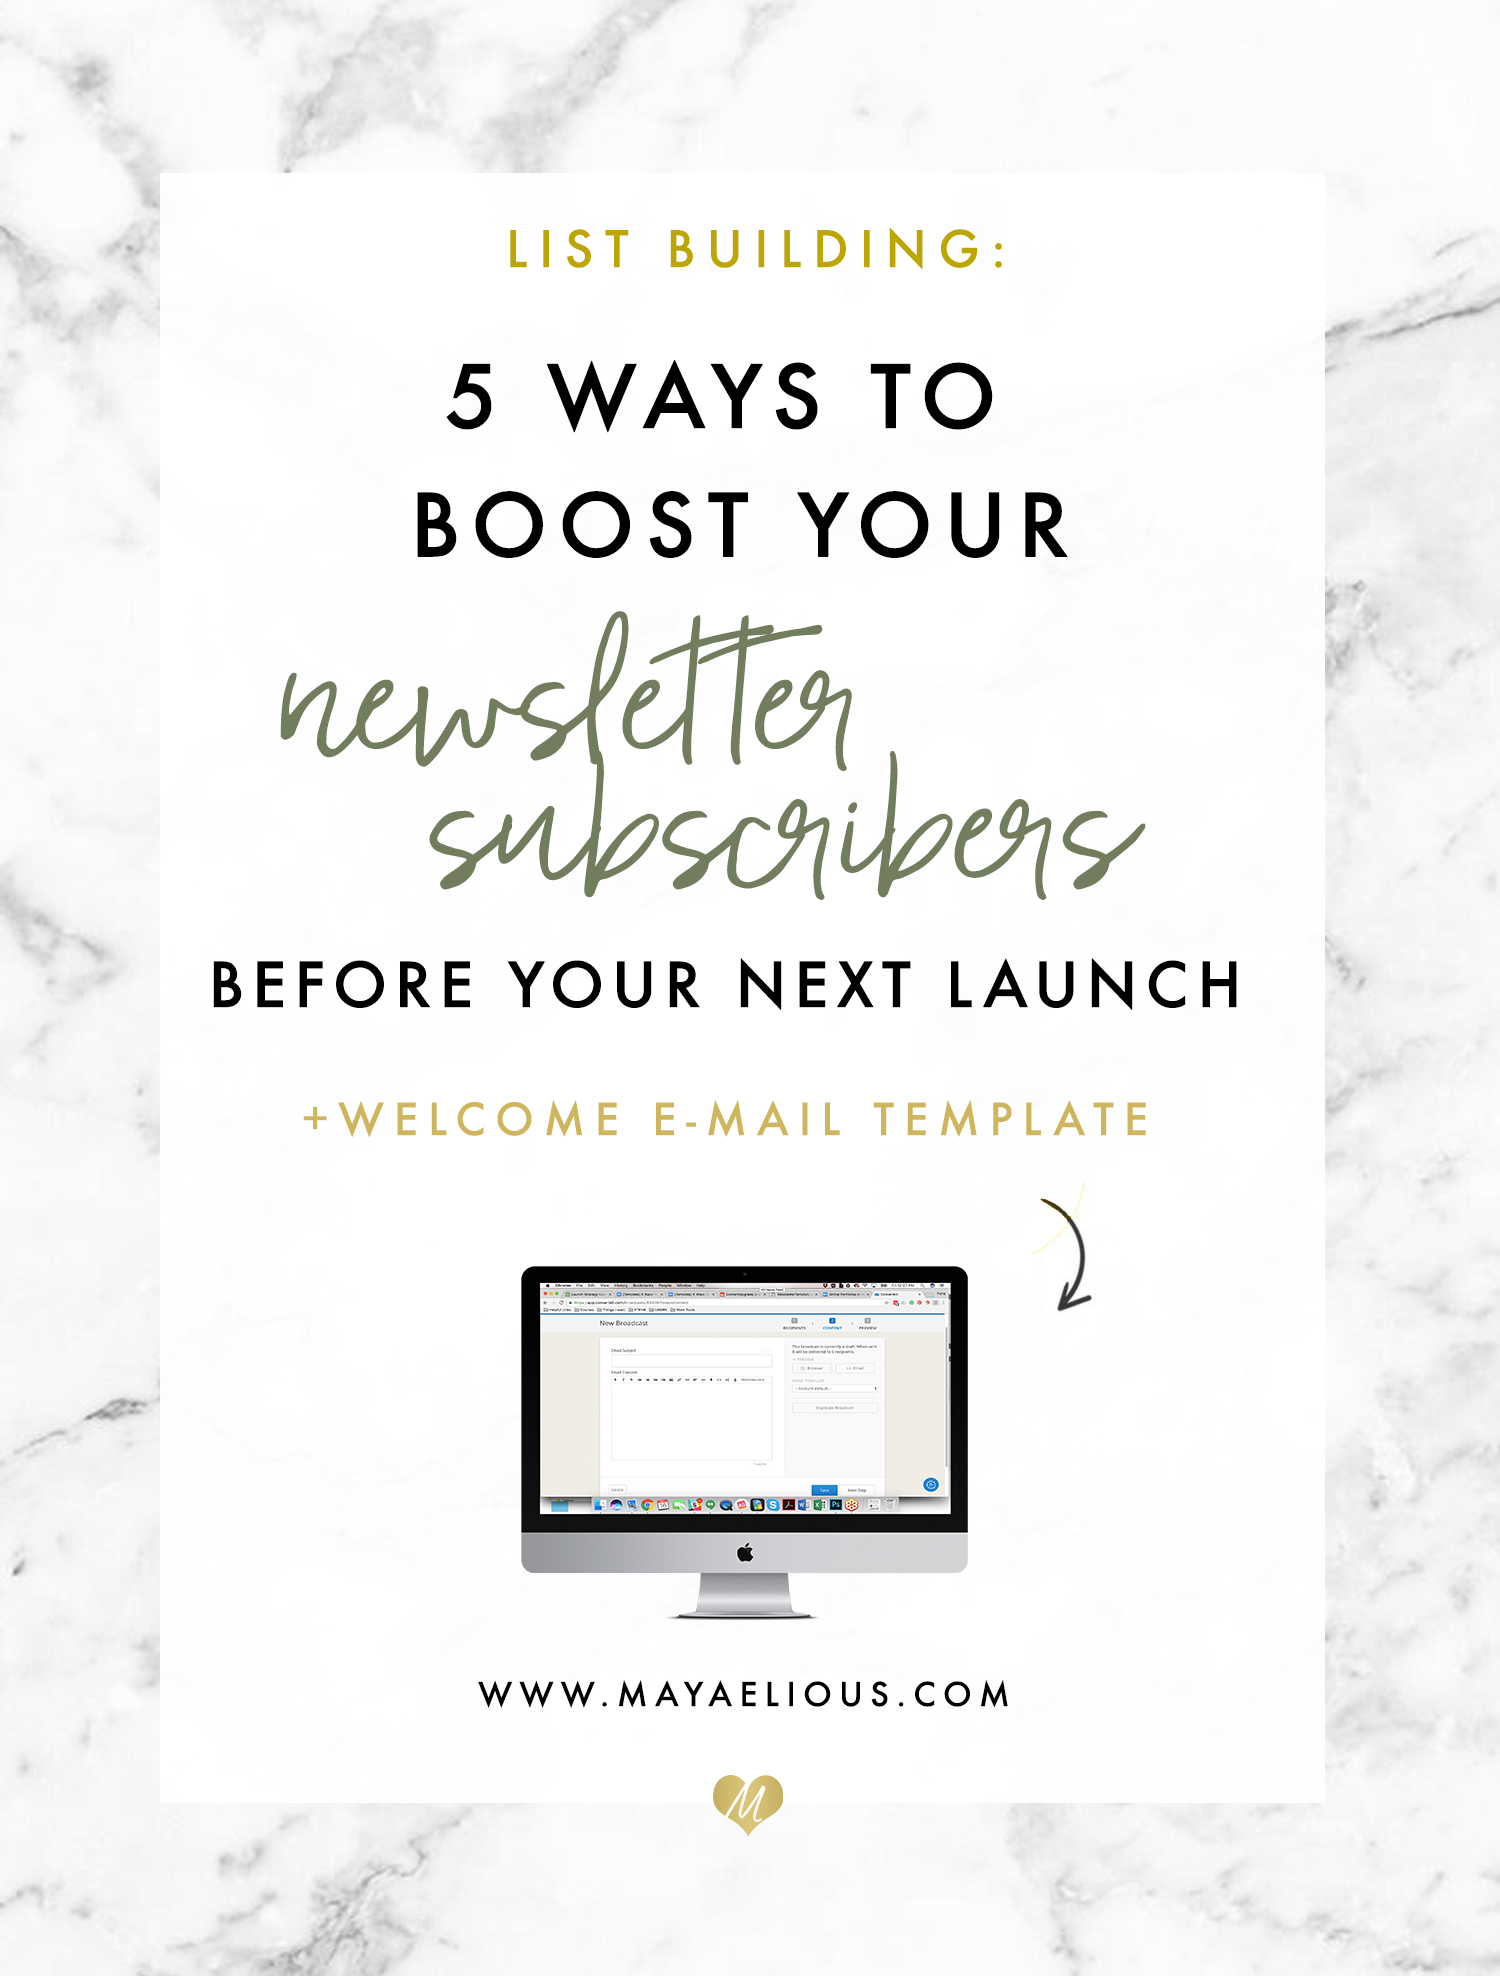 5 Ways to Boost Newsletter Subscribers Before Your Next Launch